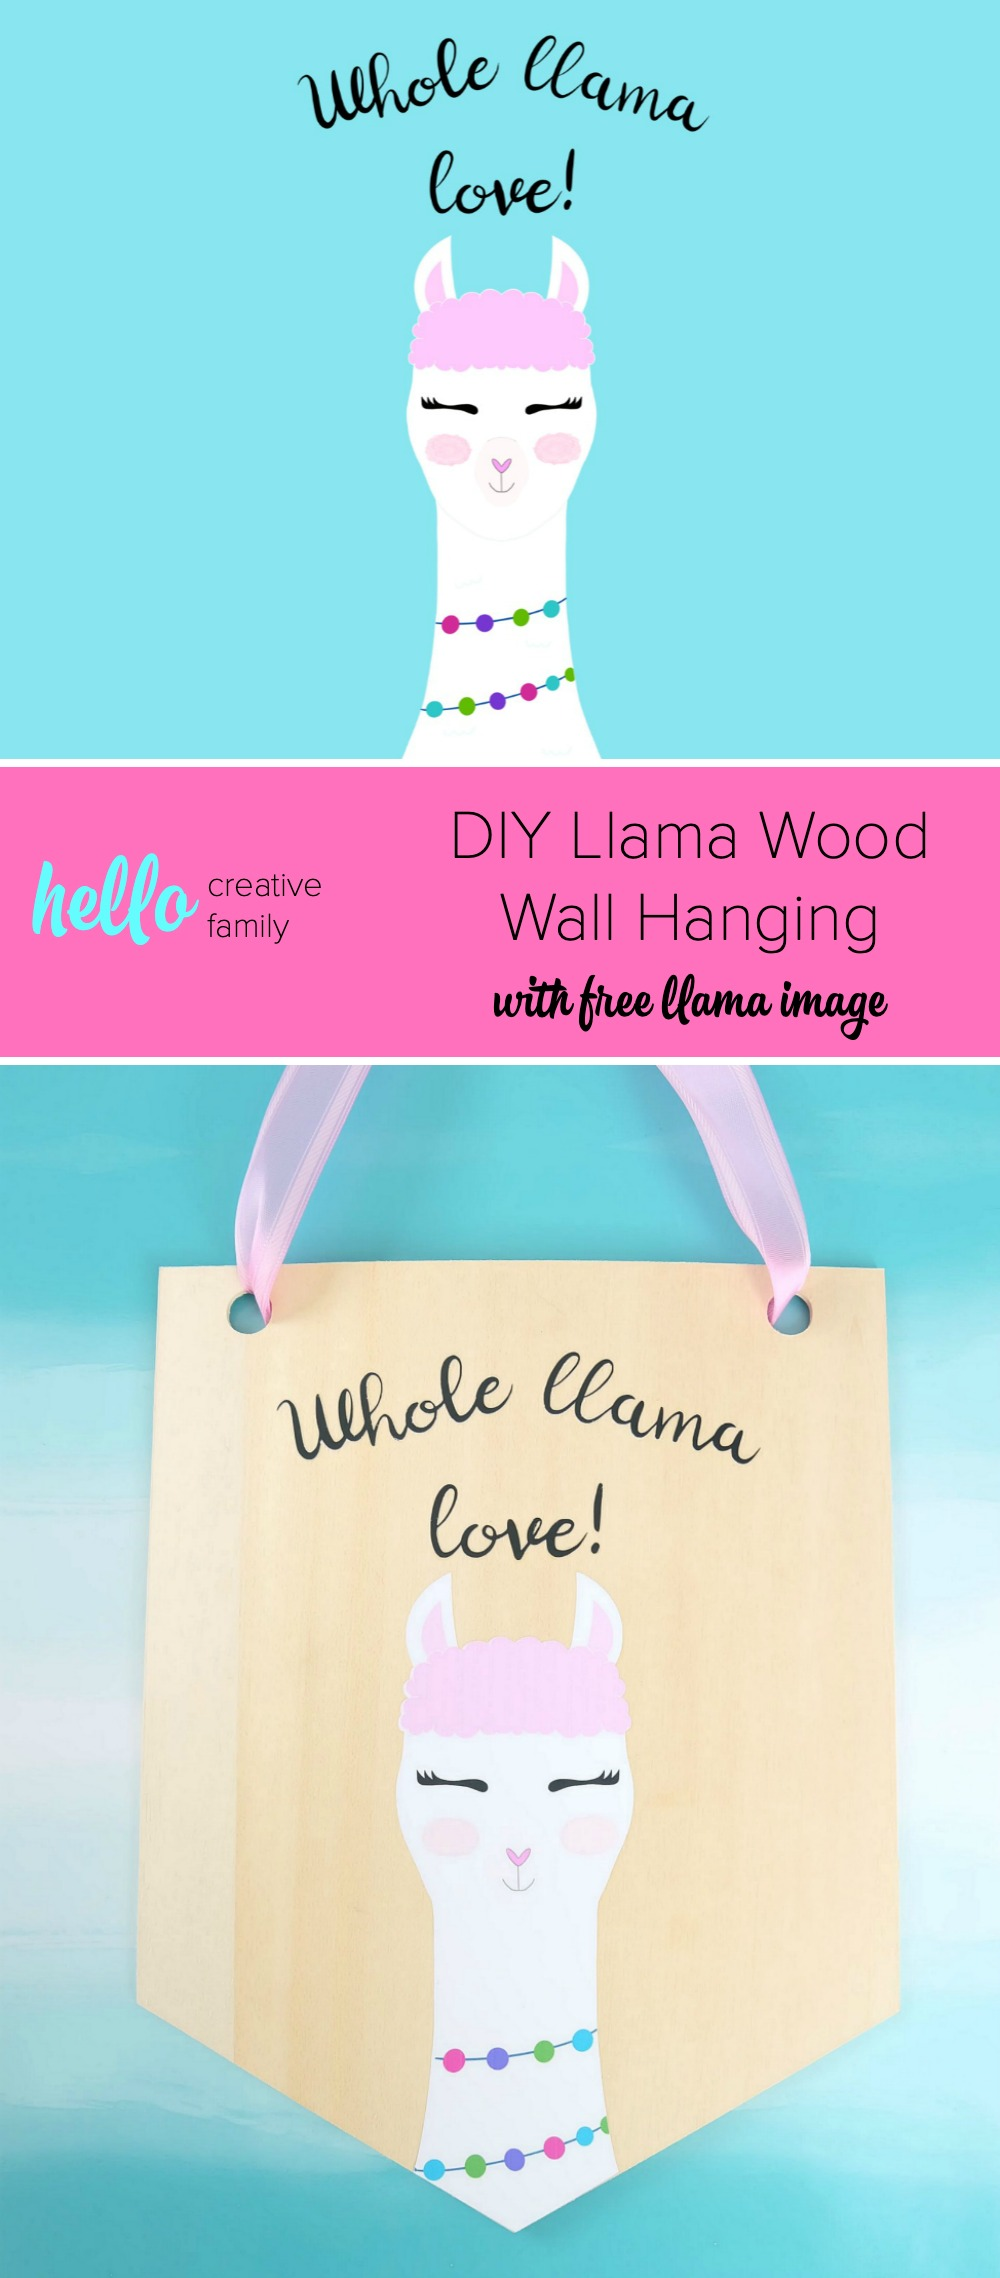 Learn how to cut basswood with your Cricut Maker and make this adorable DIY Llama Wood Wall Hanging featuring a cute Print and Cut llama and the quote Whole Llama Love. This craft would make a sweet handmade gift and would be perfect for decorating a girl's bedroom or as a fun front door decoration. Another amazing Cricut Project from Hello Creative Family. #Cricut #CricutMade #handmade #llama #girlsroom